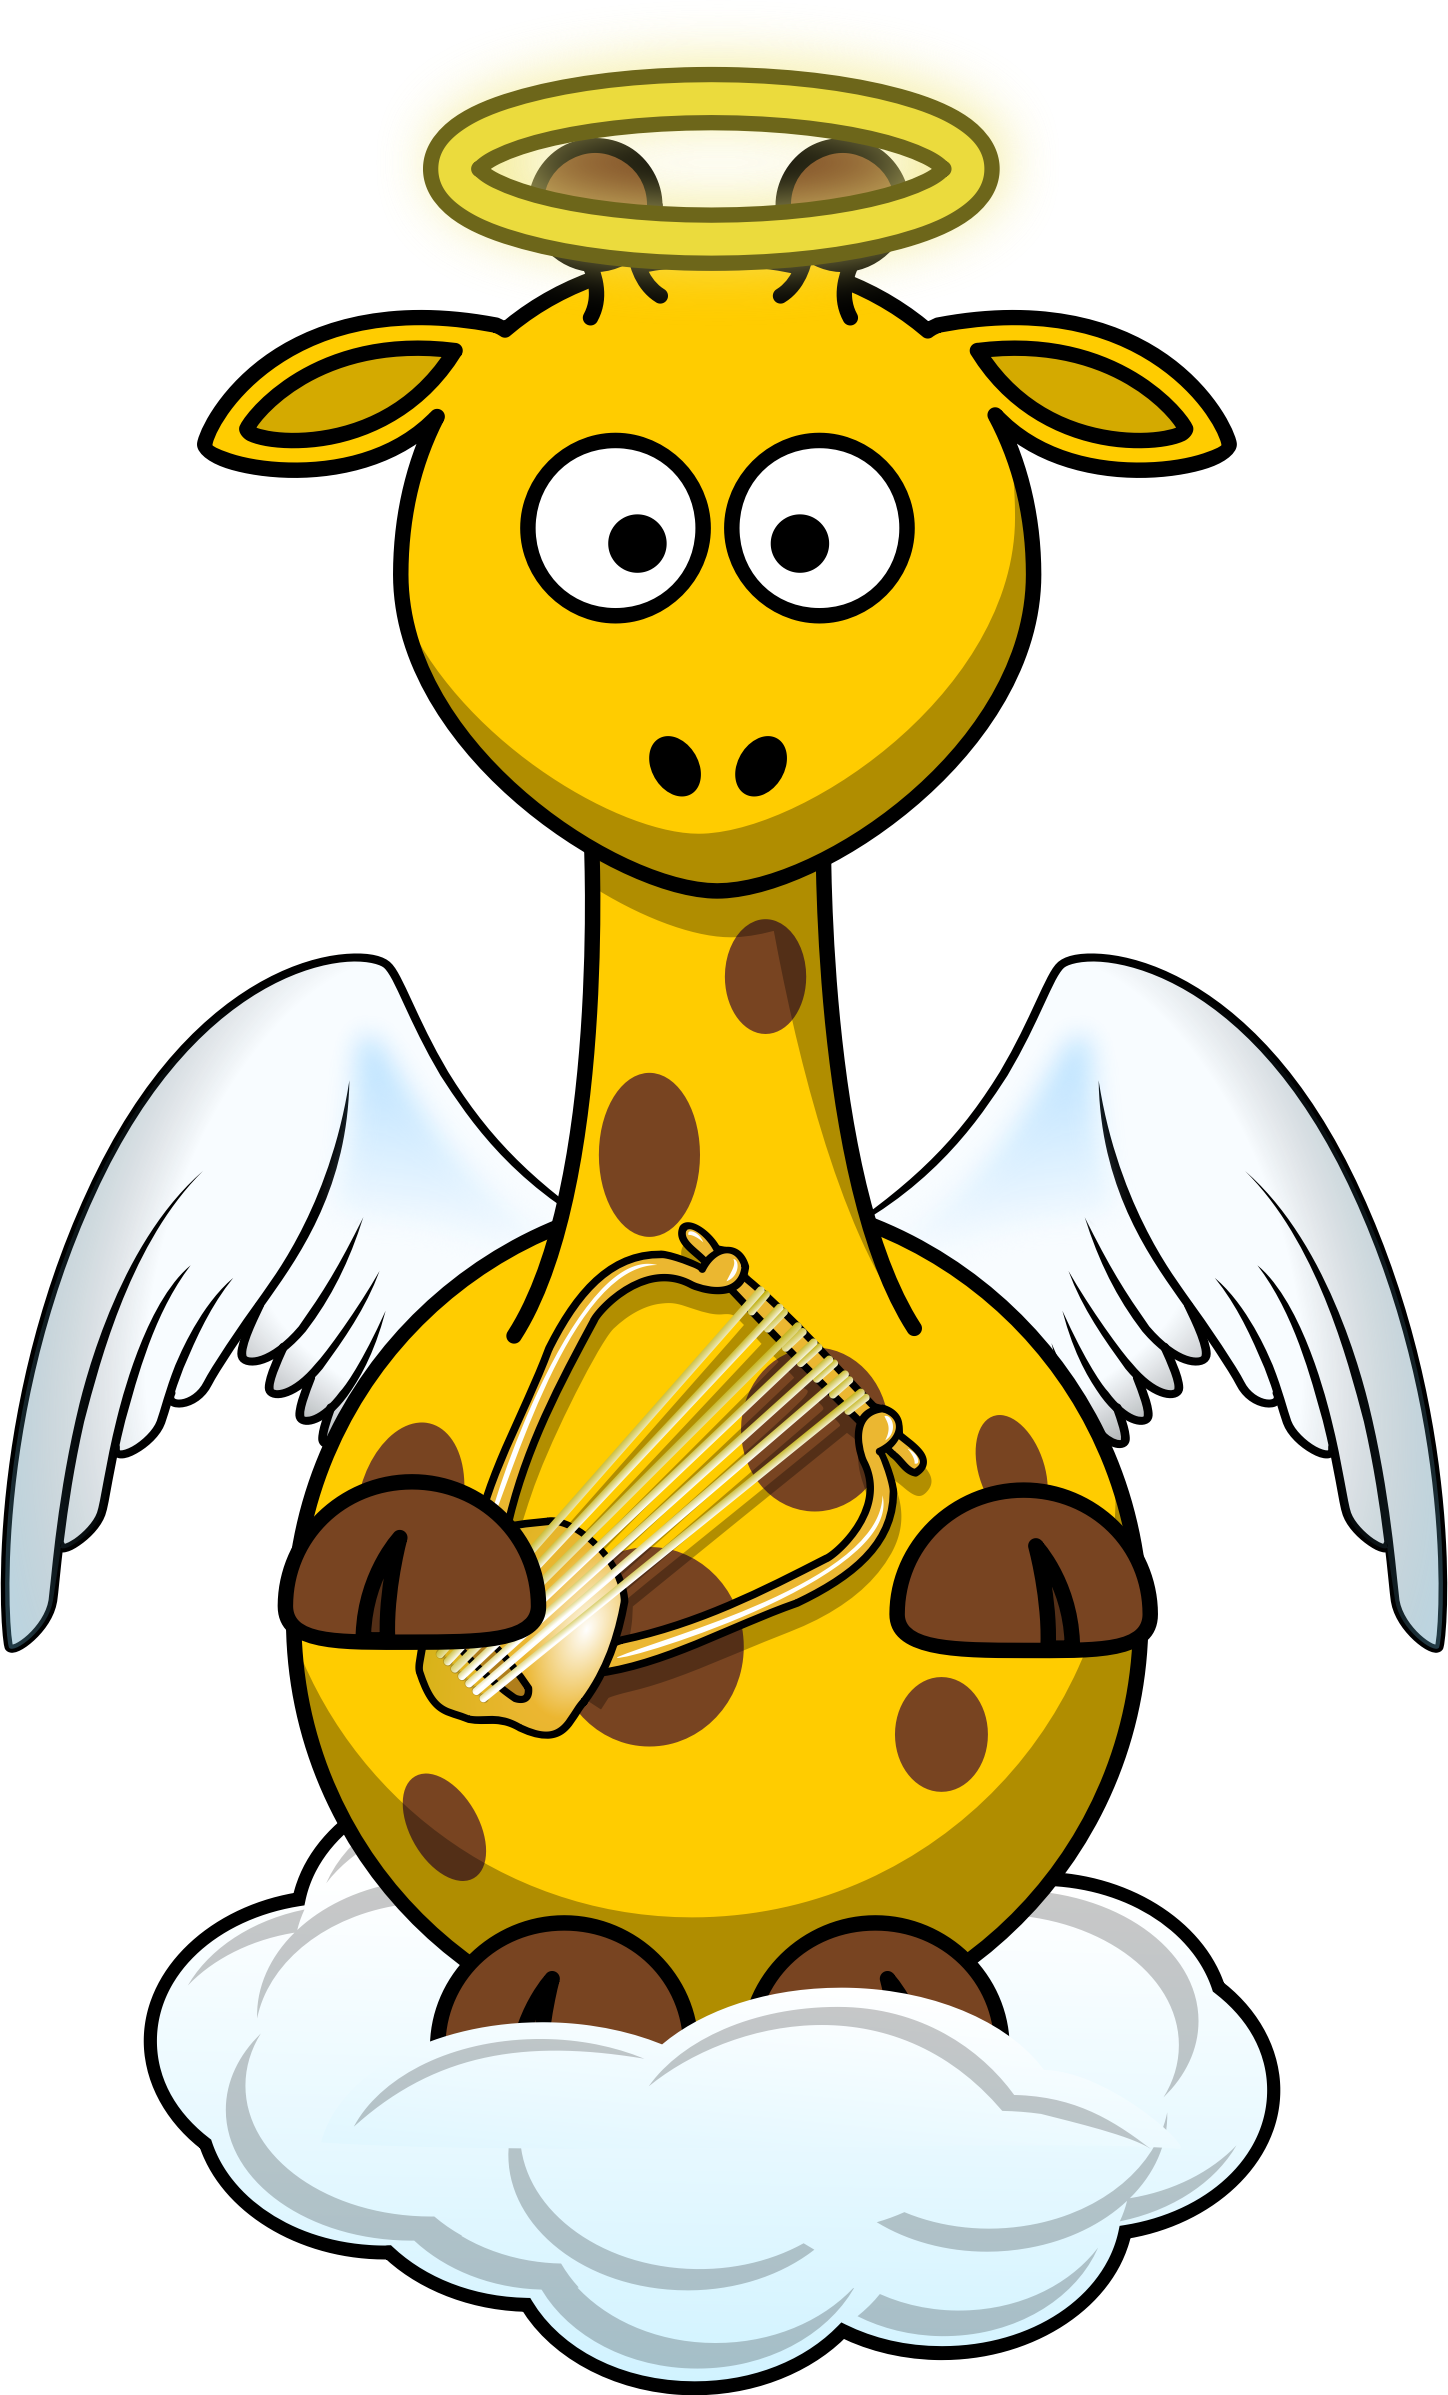 Showering clipart getting dressed. Giraffe angel by bingenberg